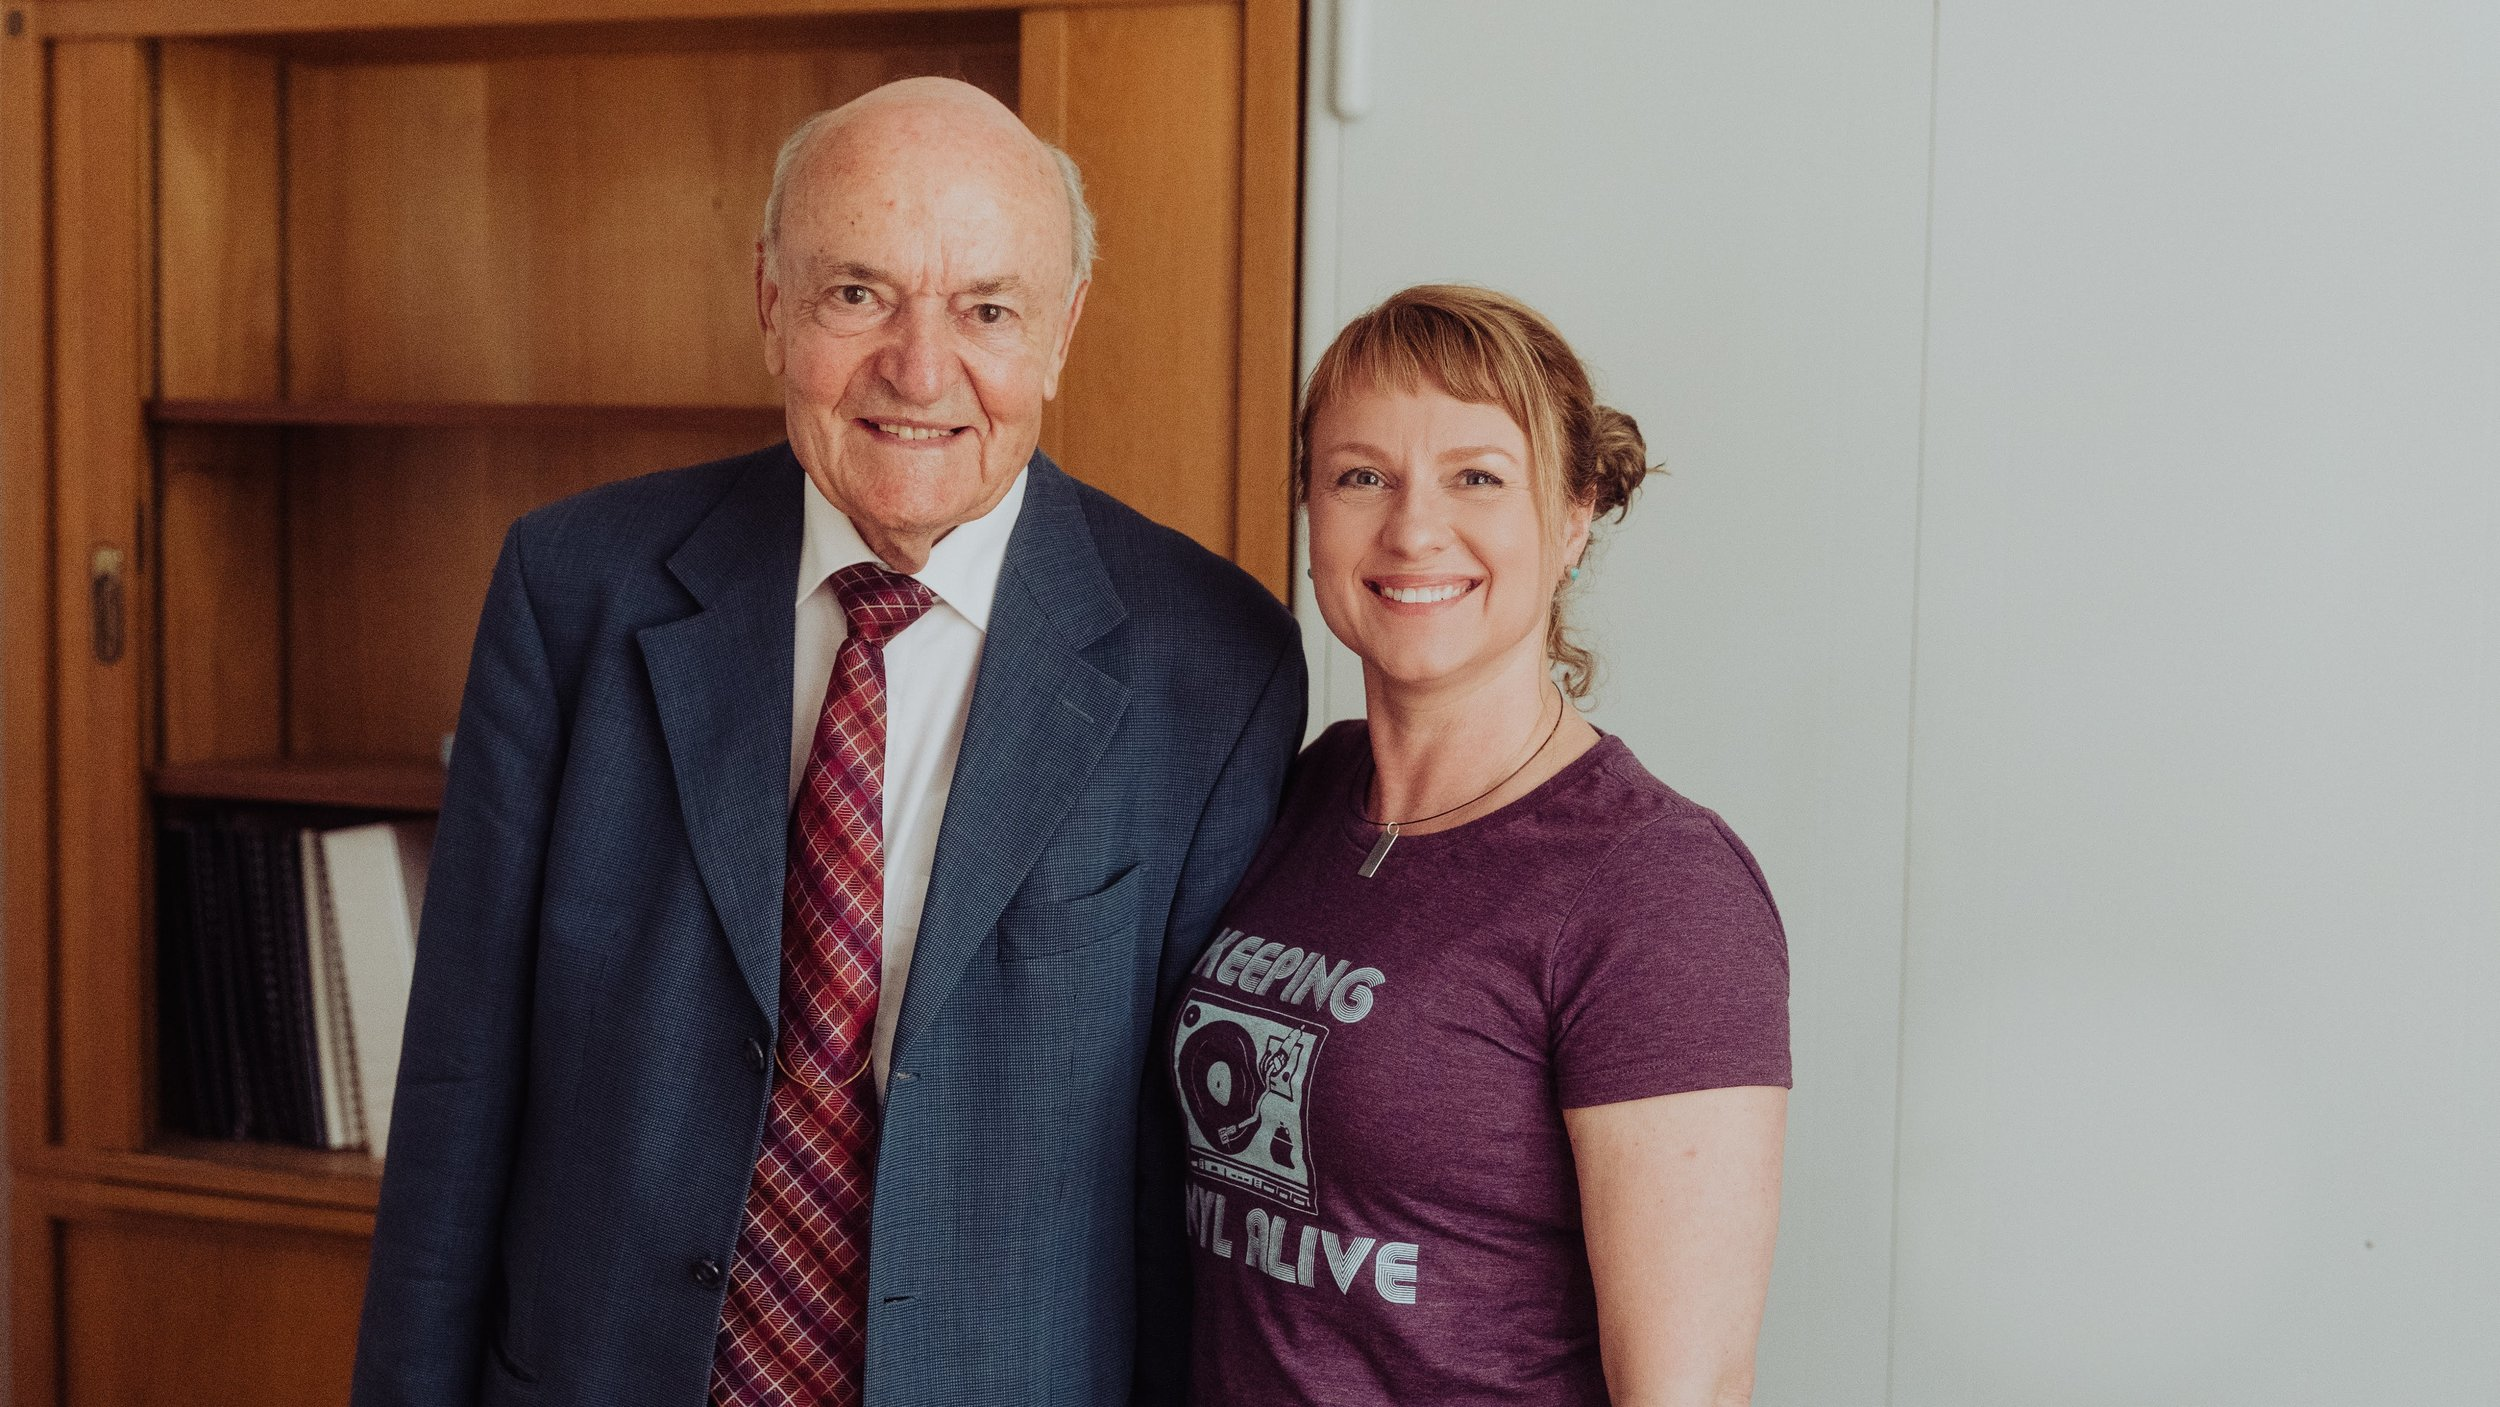 Two masters: Tonya Cornett with Professor Ludwig Narziss